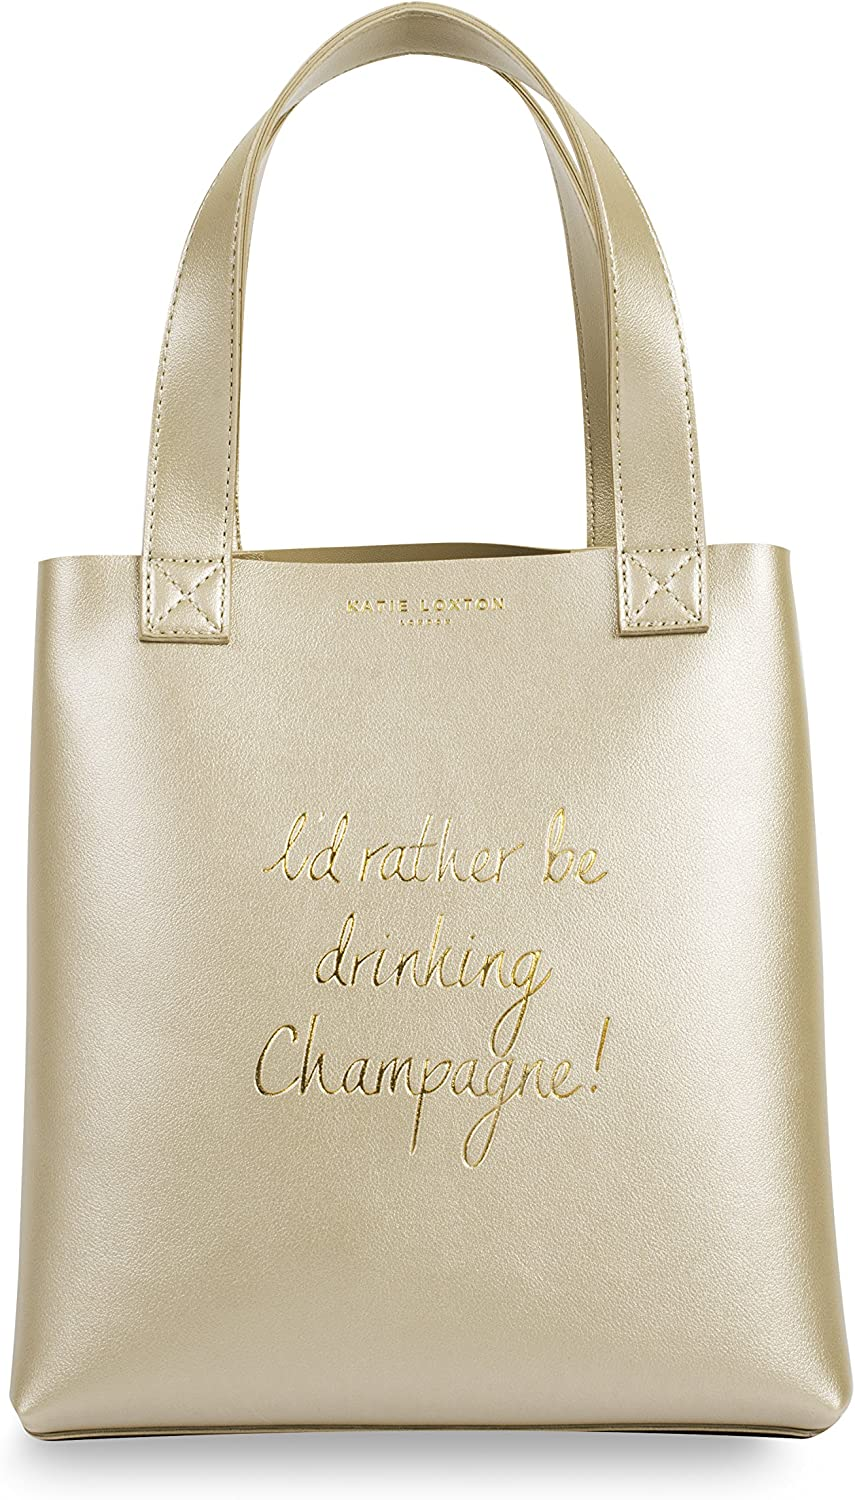 Katie Loxton - LUNCH BAG - I''D RATHER BE DRINKING CHAMPAGNE - gold - 25x23.5x12.5cm